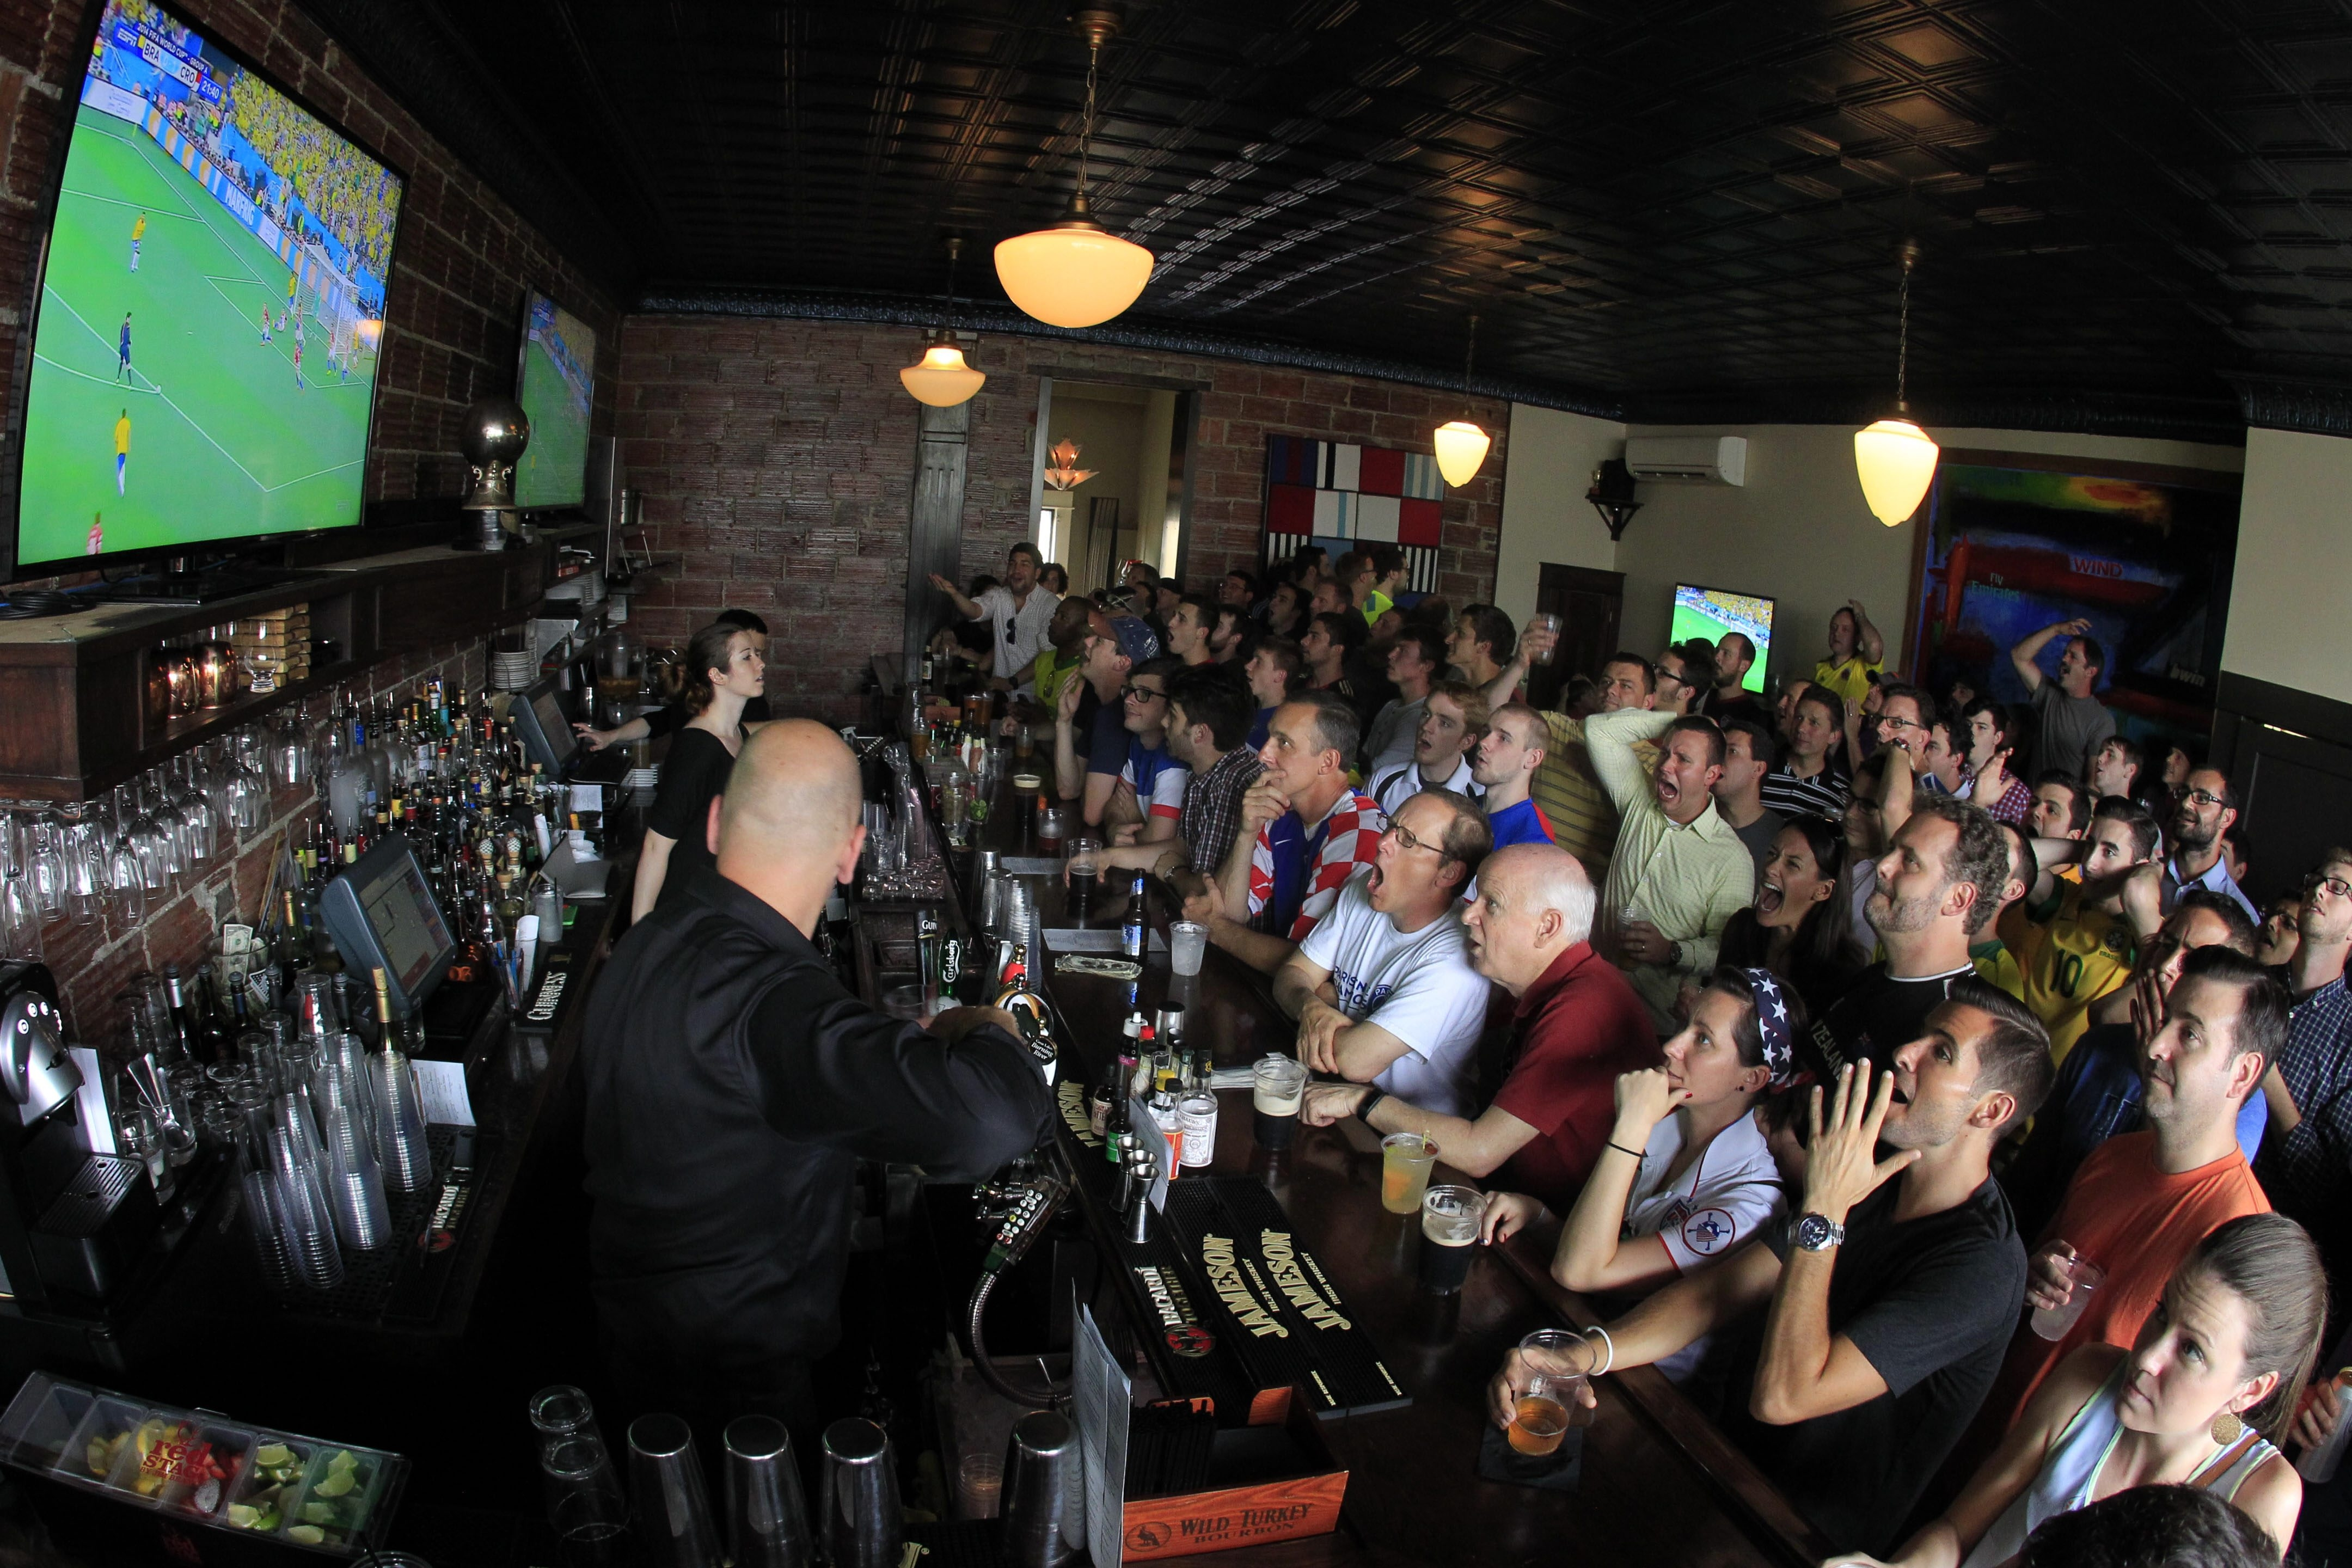 Soccer fans watch the World Cup at Mes Que Bar on Thursday, June 12, 2014. (Harry Scull Jr./Buffalo News)